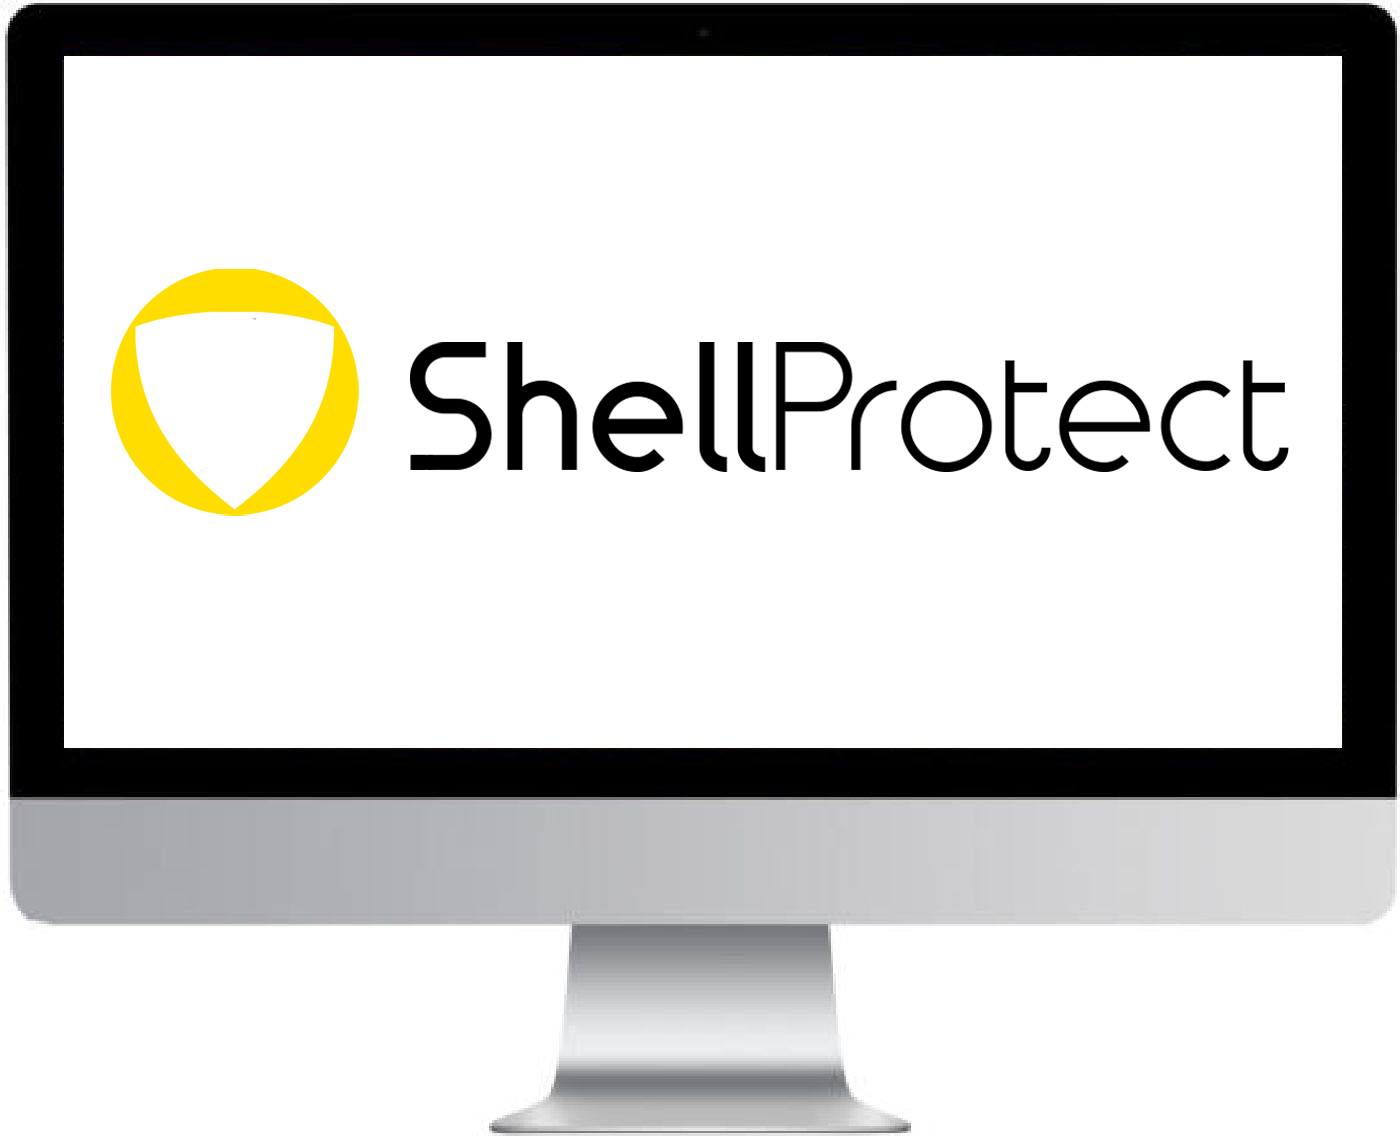 ShellProtect Cyber Security